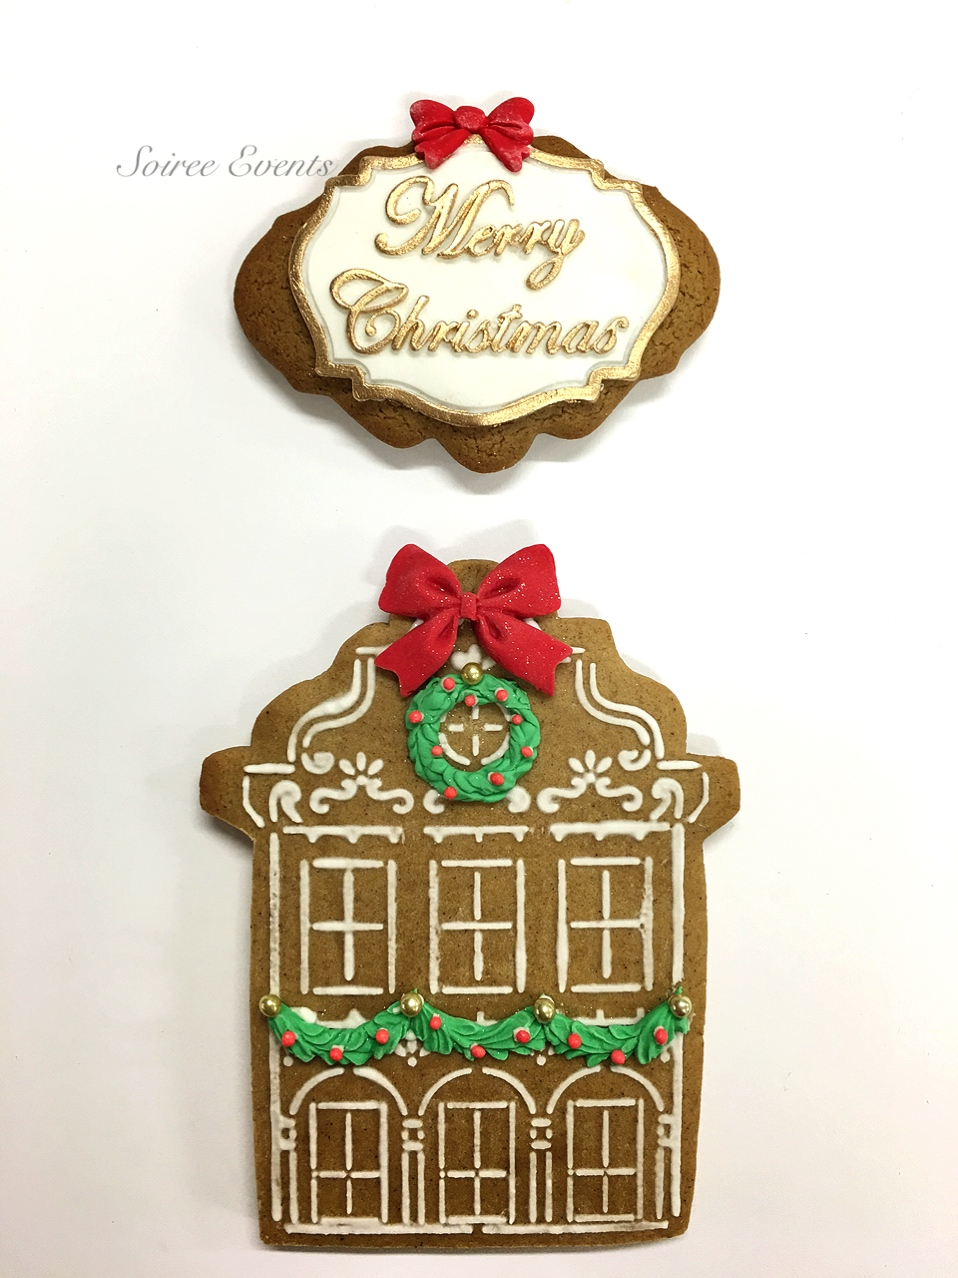 Merry-Christmas-House-cookie